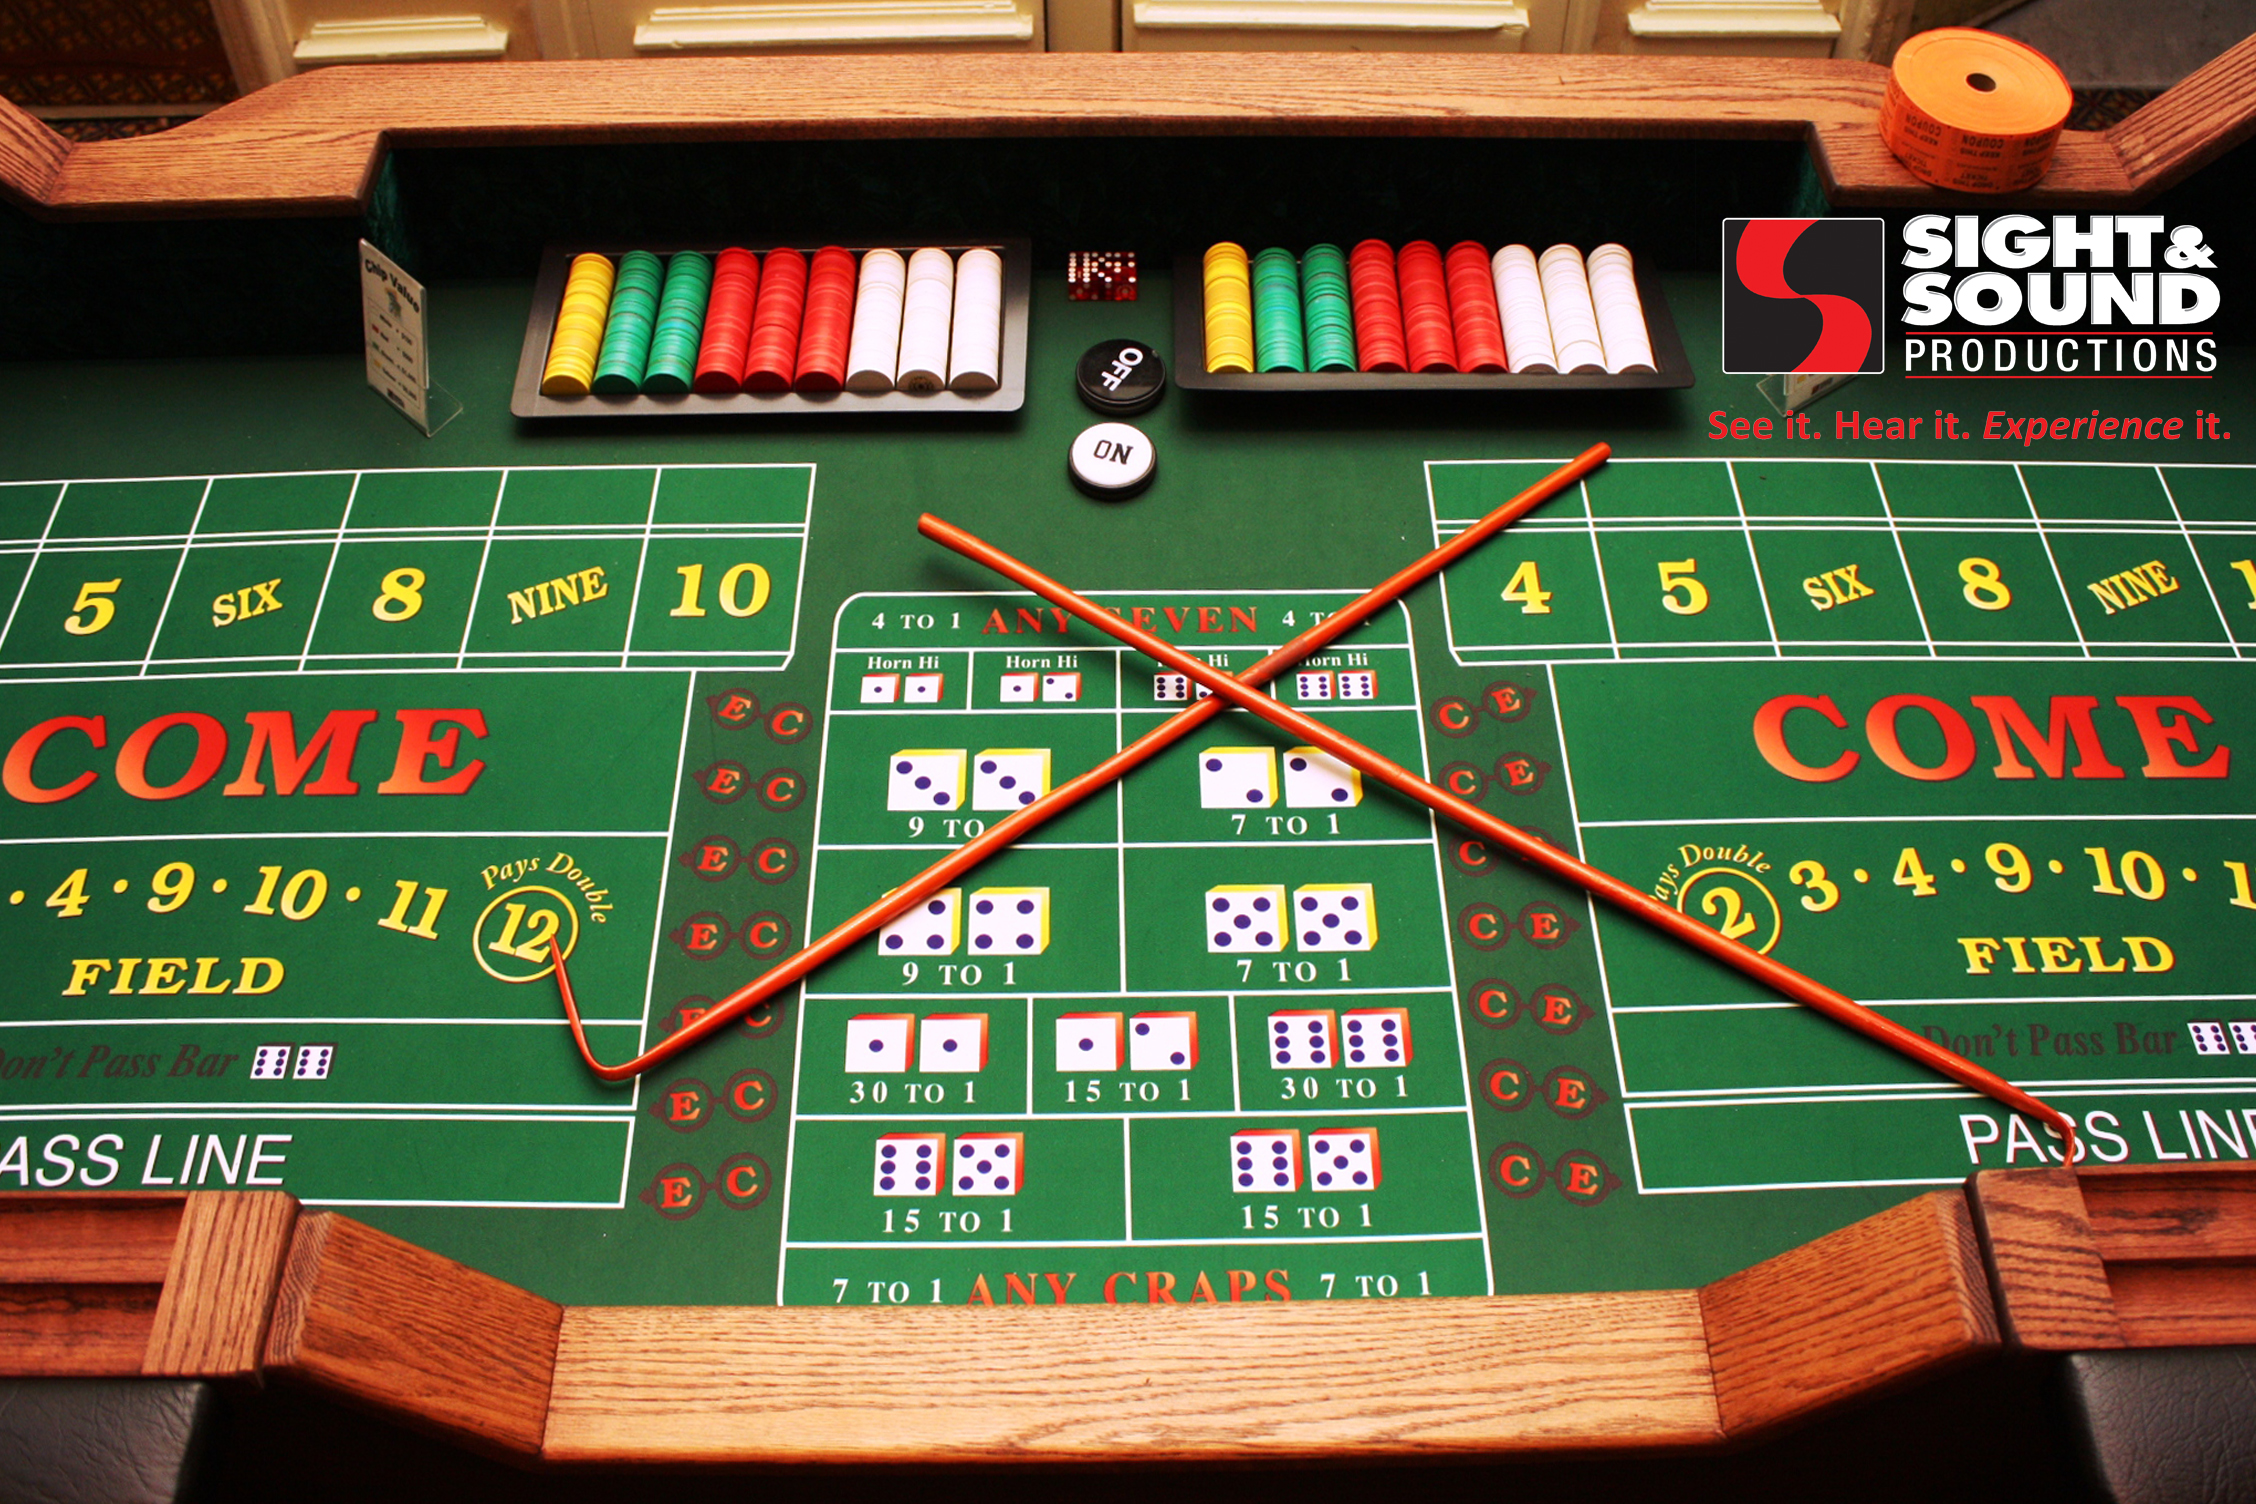 How to win at craps at the casino